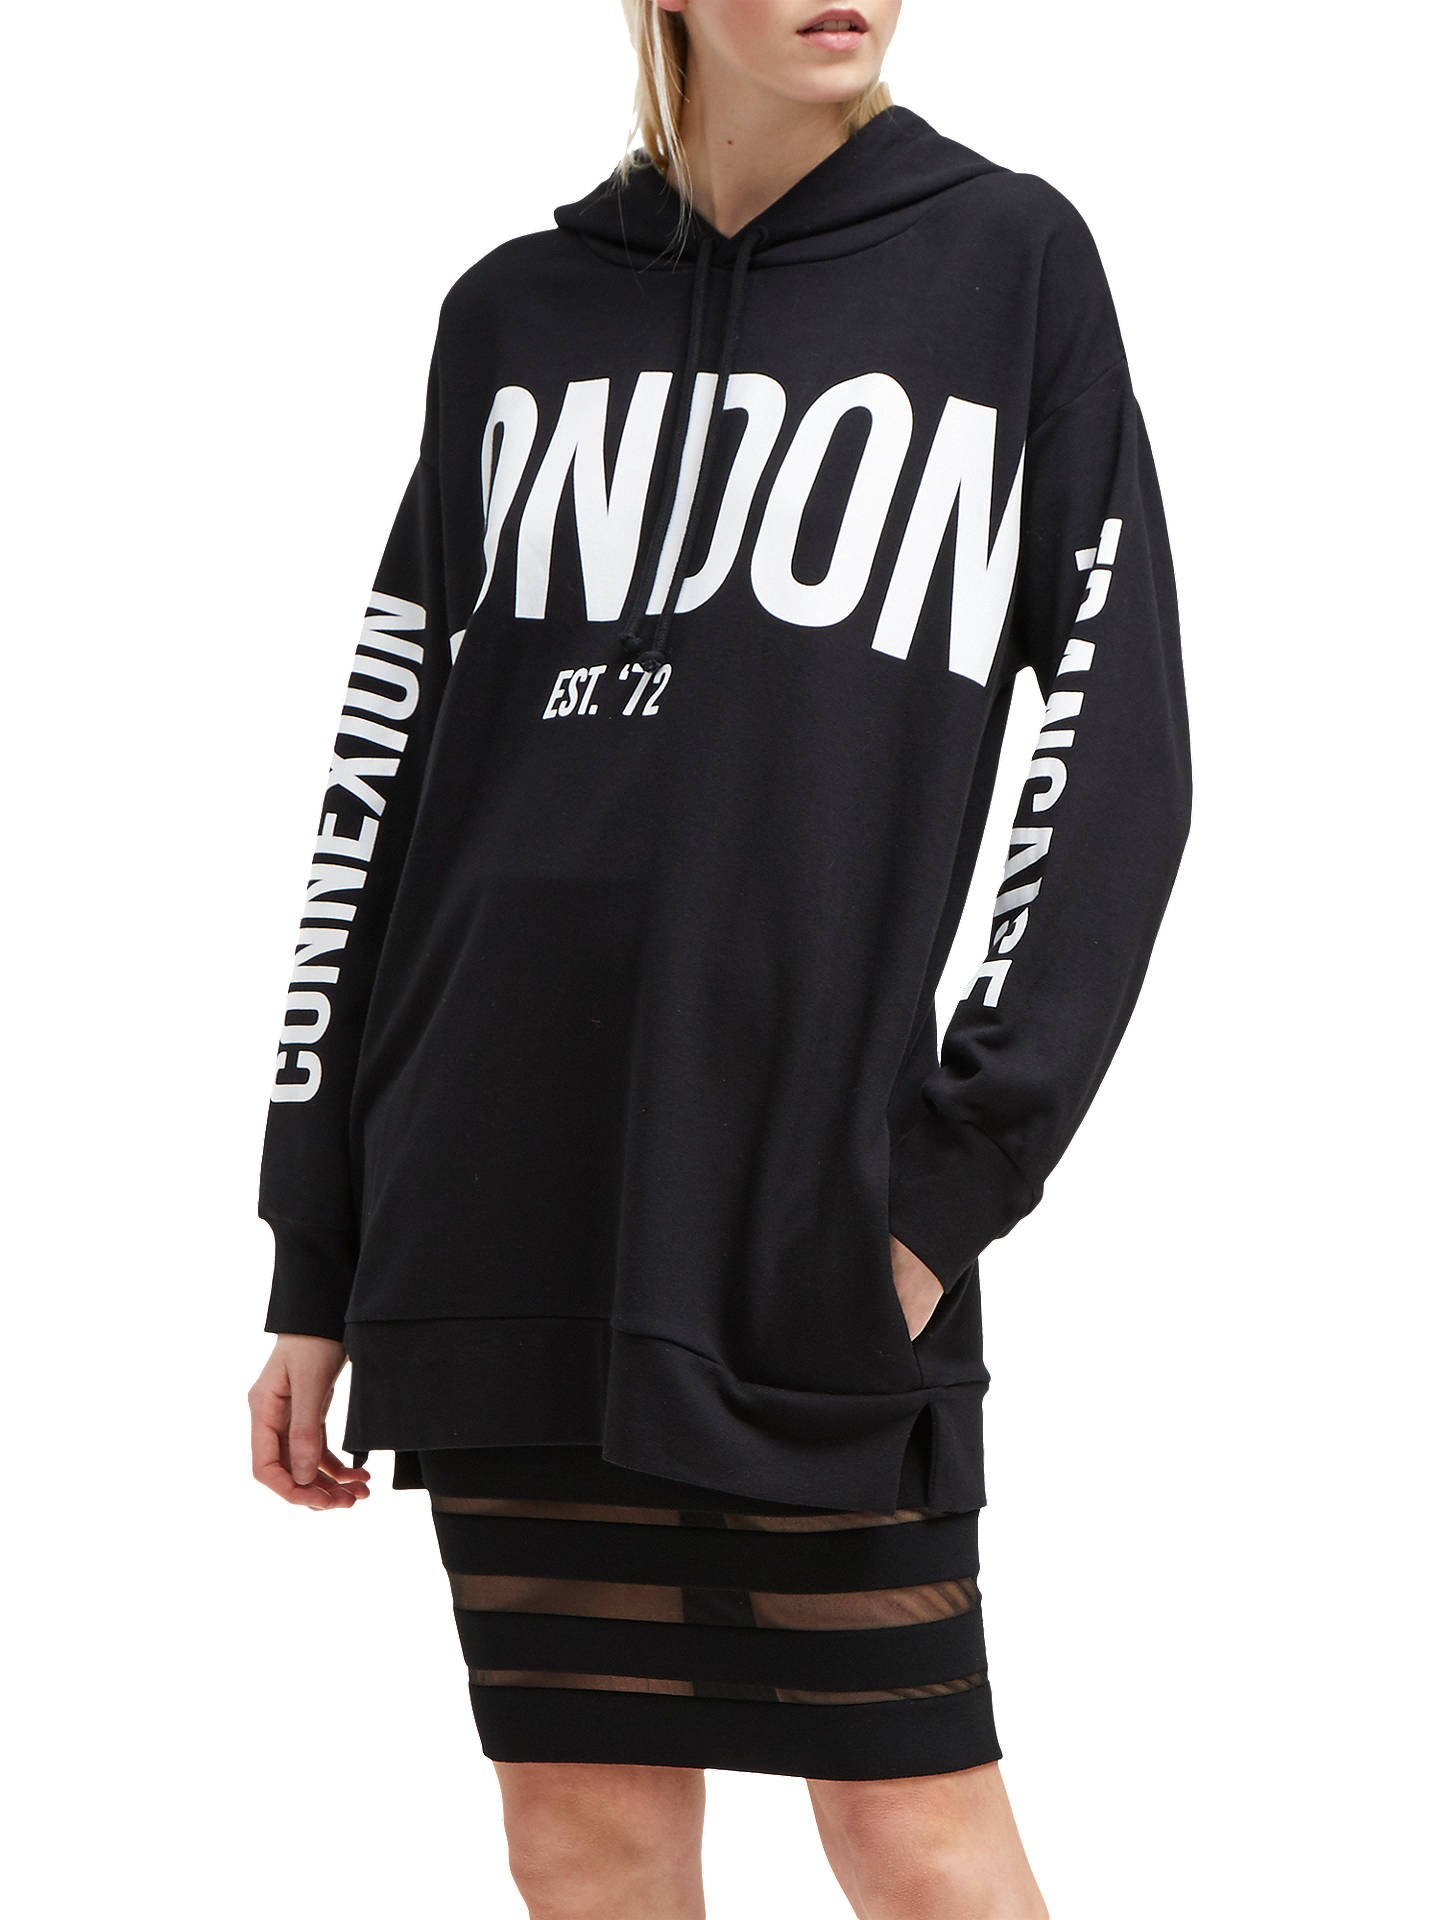 3eafa4e8245 Buy French Connection Graphic Jersey Sweatshirt, Black/White, XS Online at  johnlewis.